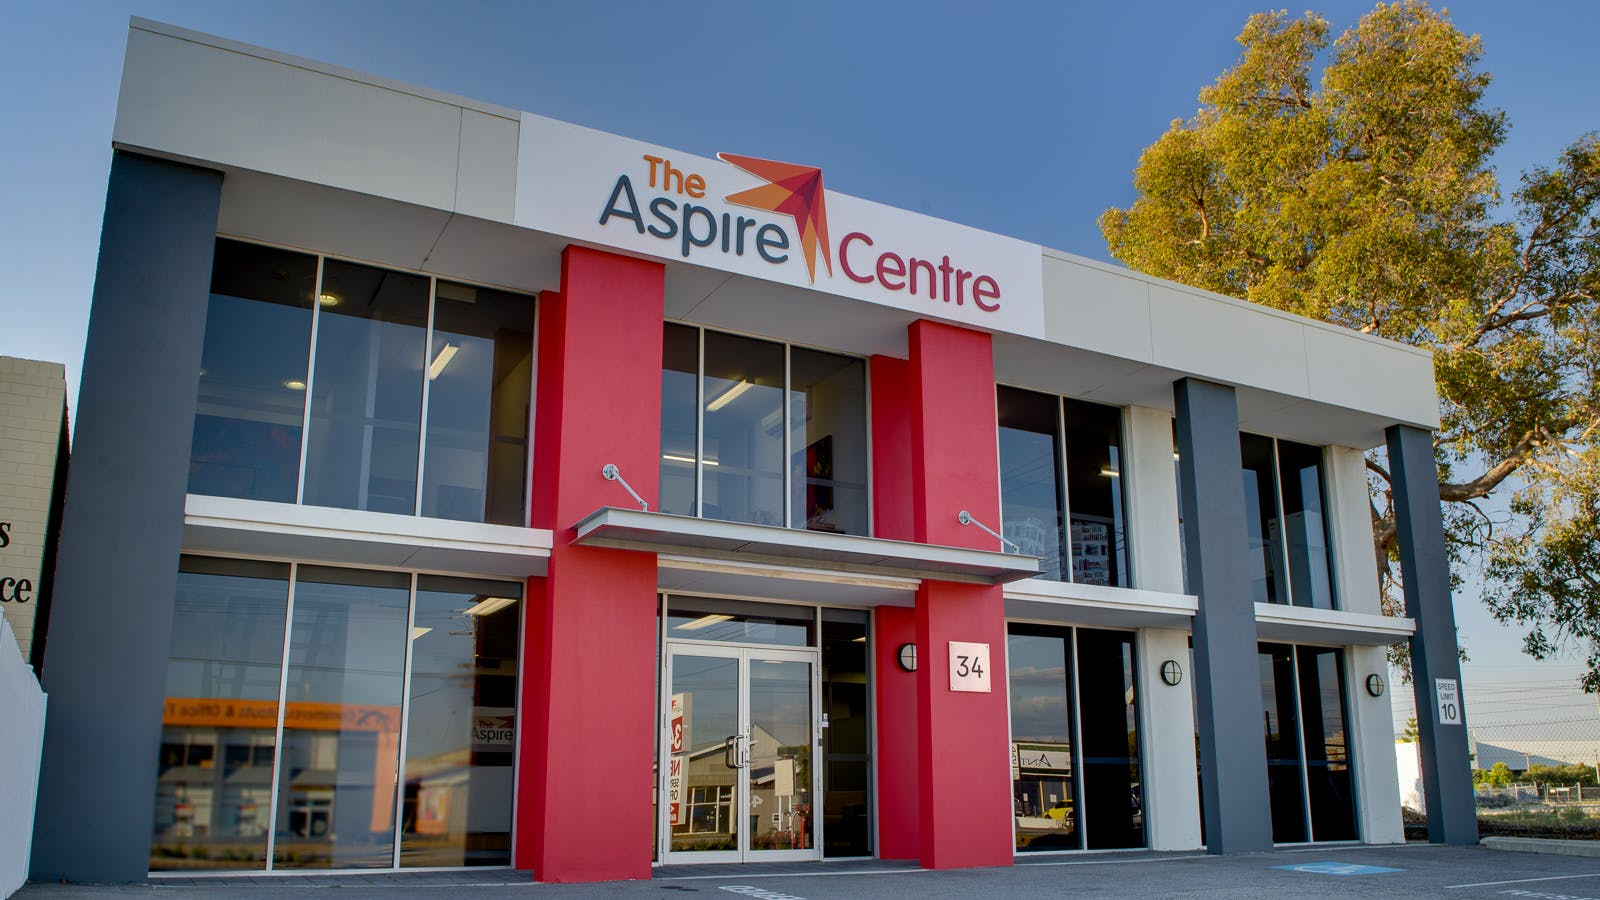 Office 12, serviced office at The Aspire Centre, image 2